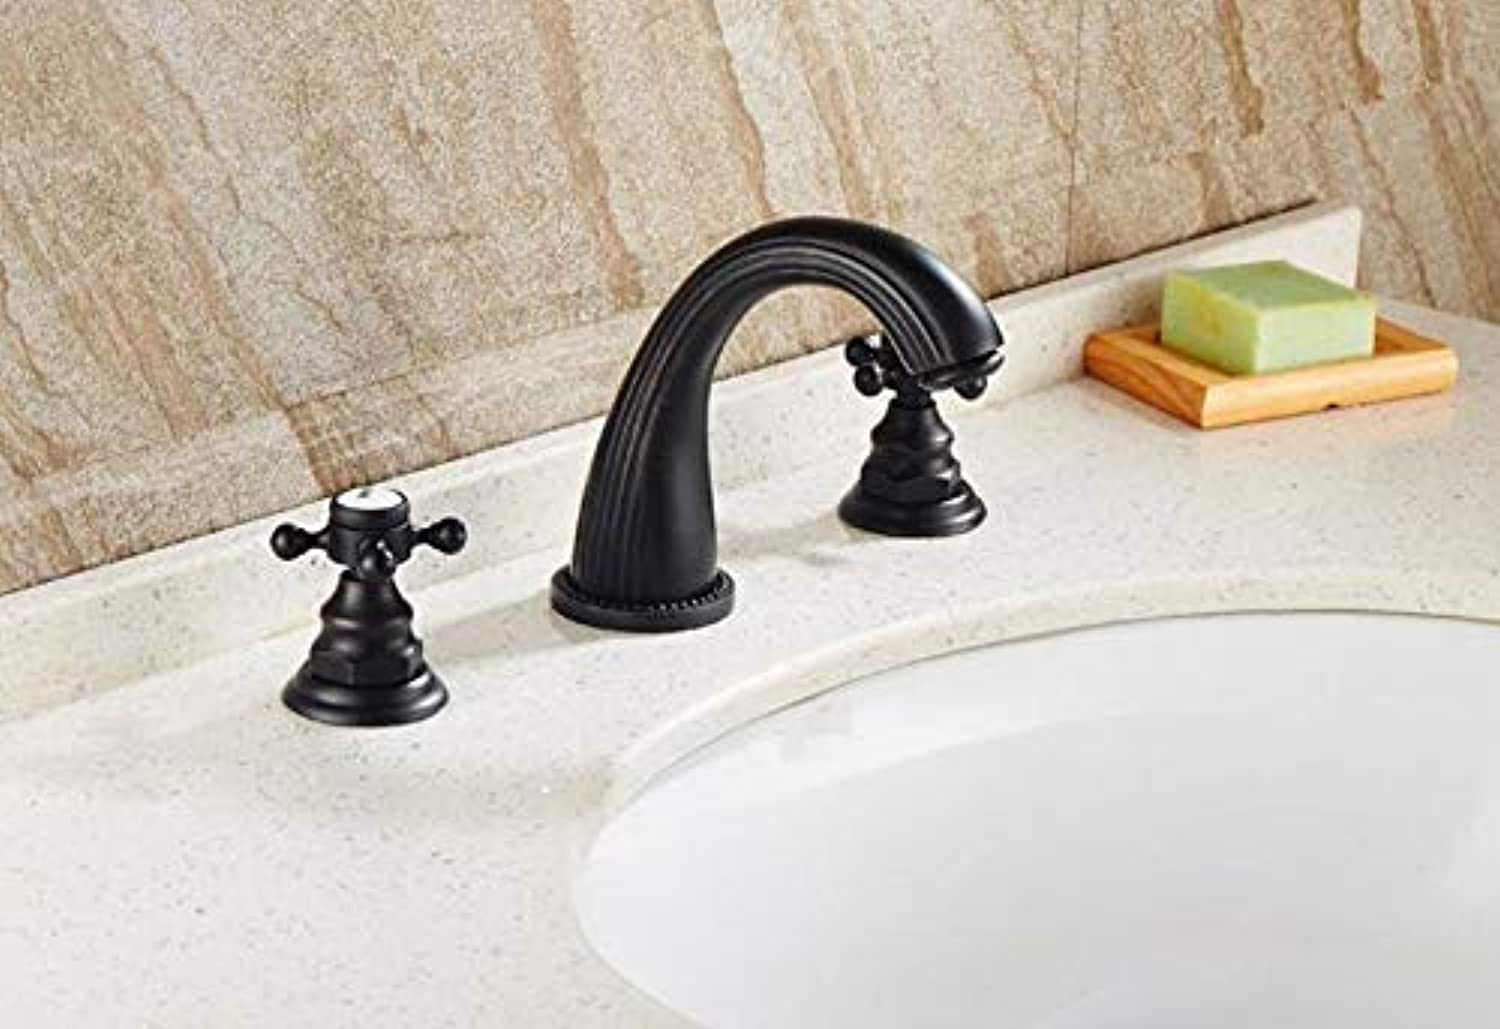 Mkkwp Bathroom Faucet Solid Brass Construction Hot and Cold Orb Finish 8' Widespread Basin Faucet Bathroom Sink Tap